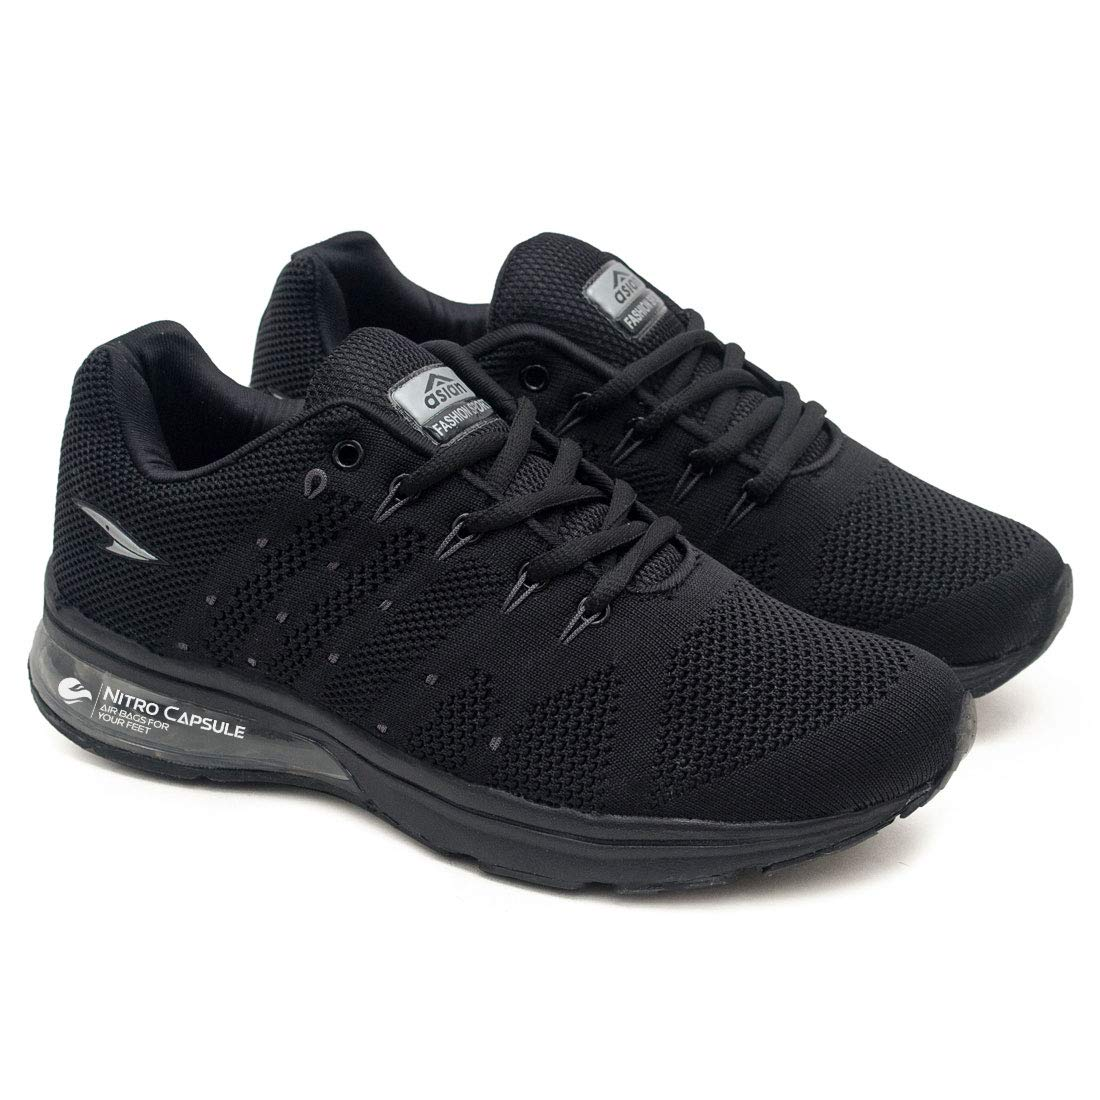 Buy ASIAN Men's Running Shoes at Amazon.in